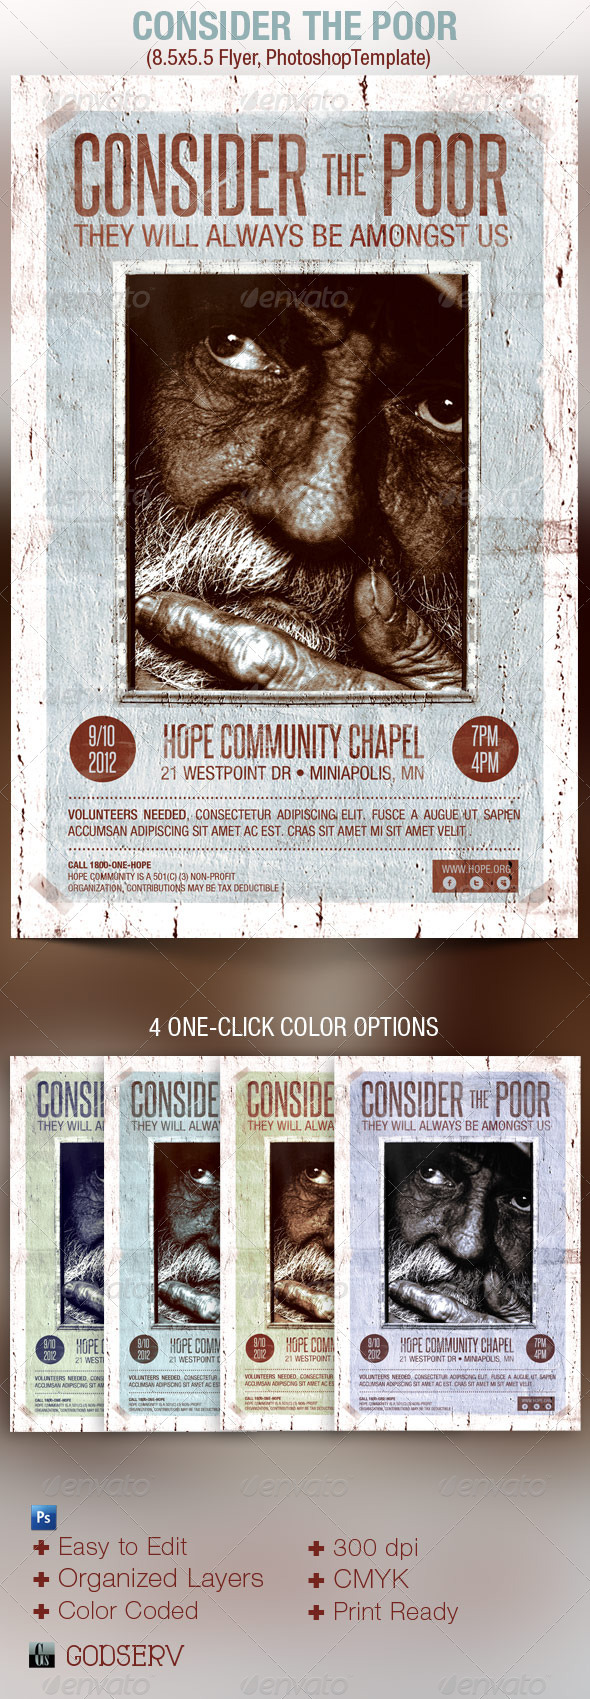 Consider The Poor Charity Organization Flyer  - Church Flyers